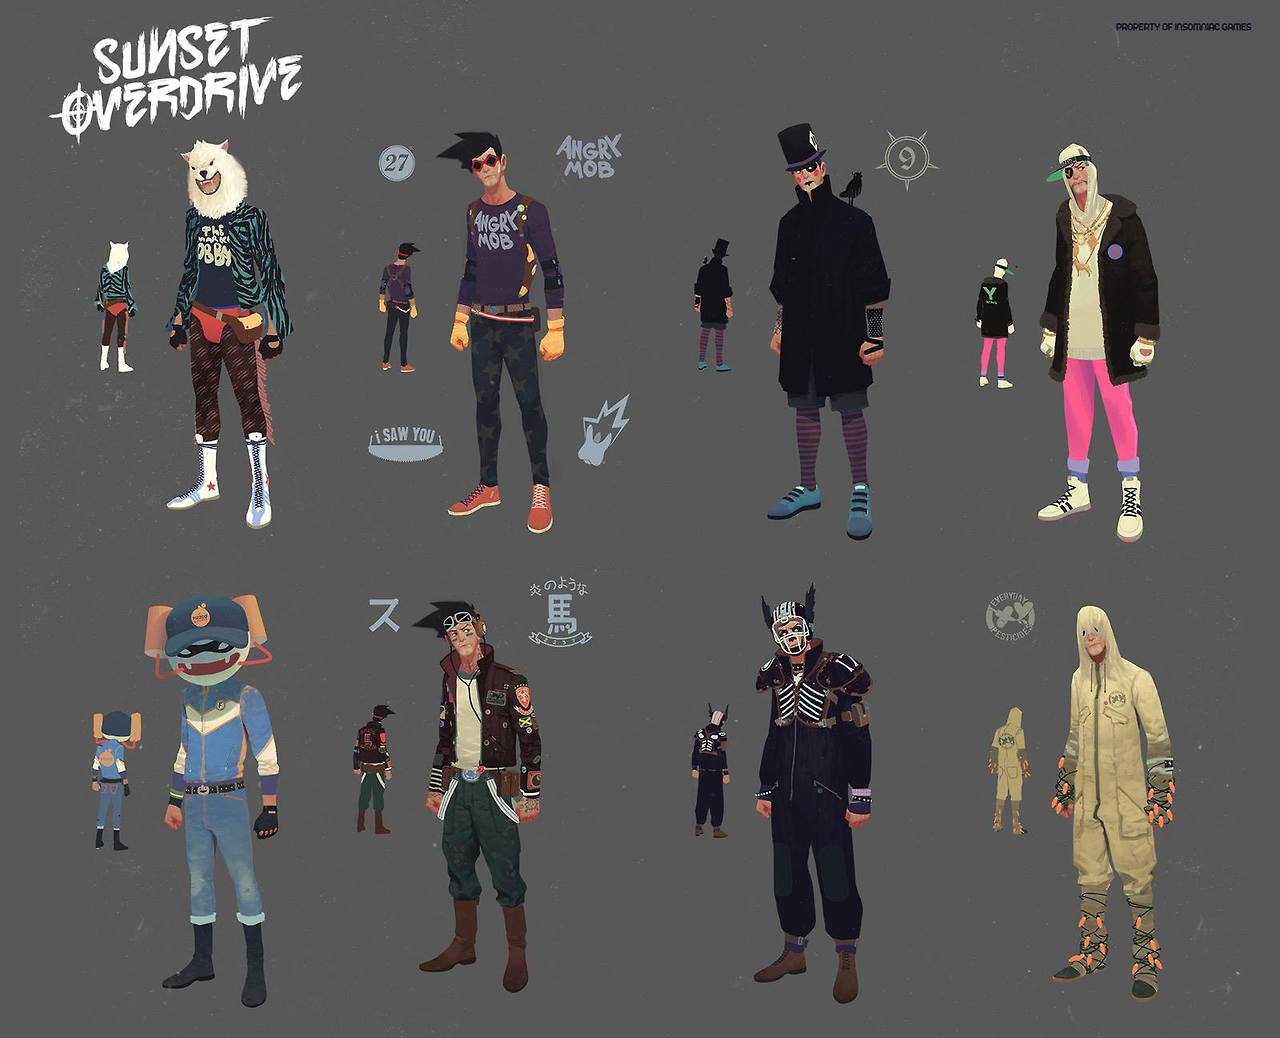 Character Design And Concept Art : Sunset overdrive concept art and illustration by vasili